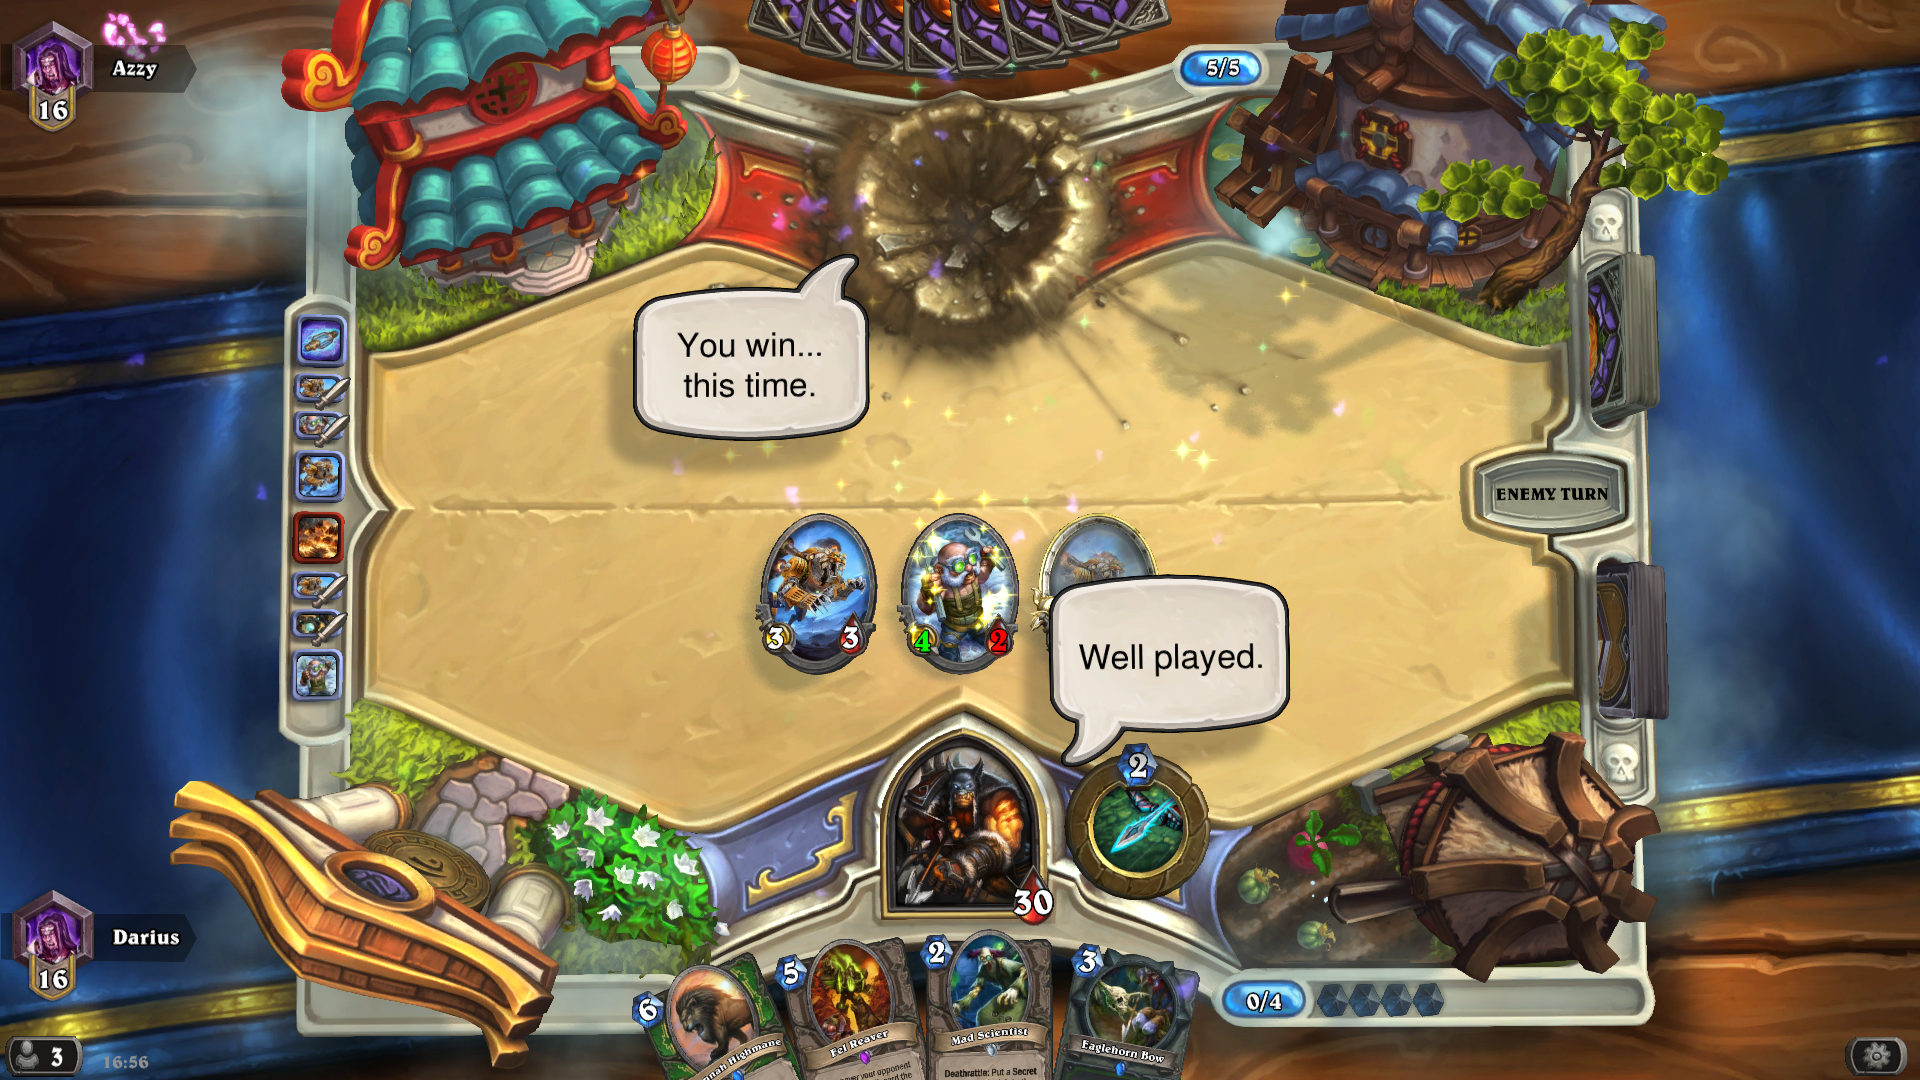 Hearthstone Screenshot 08-03-15 16.56.15.png